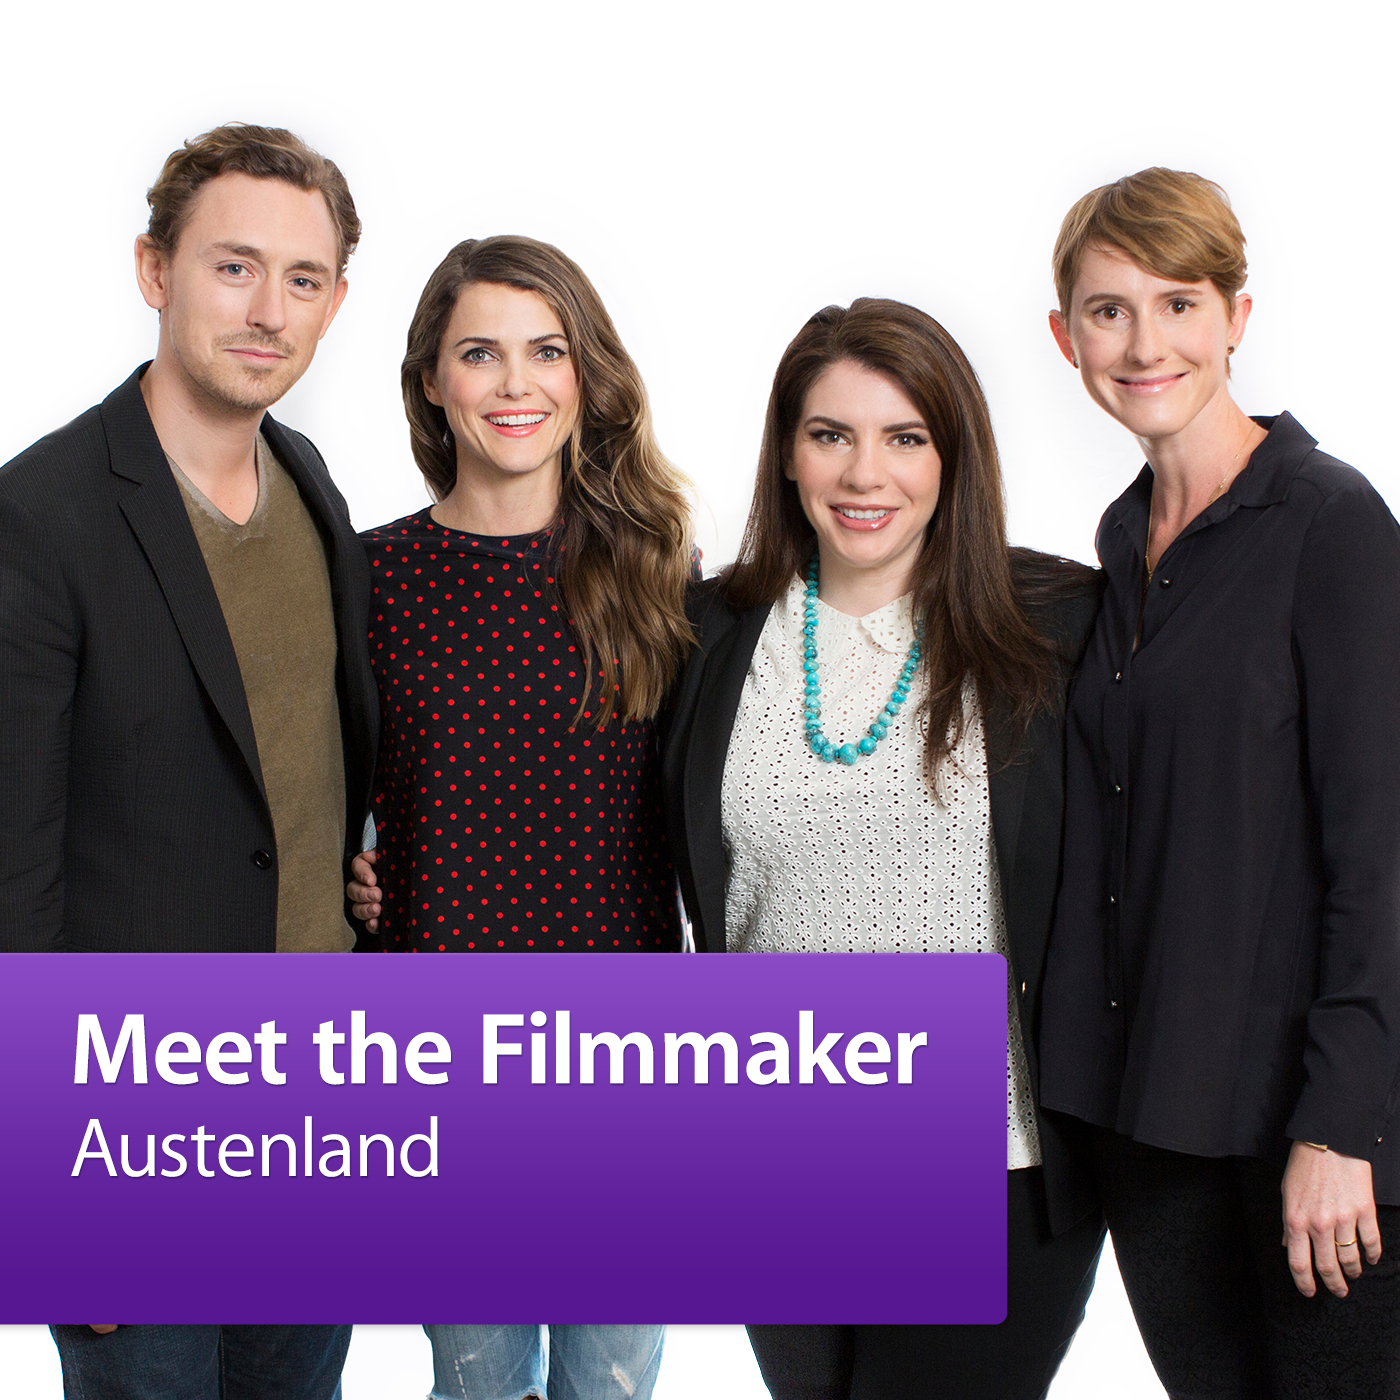 Austenland: Meet the Filmmaker